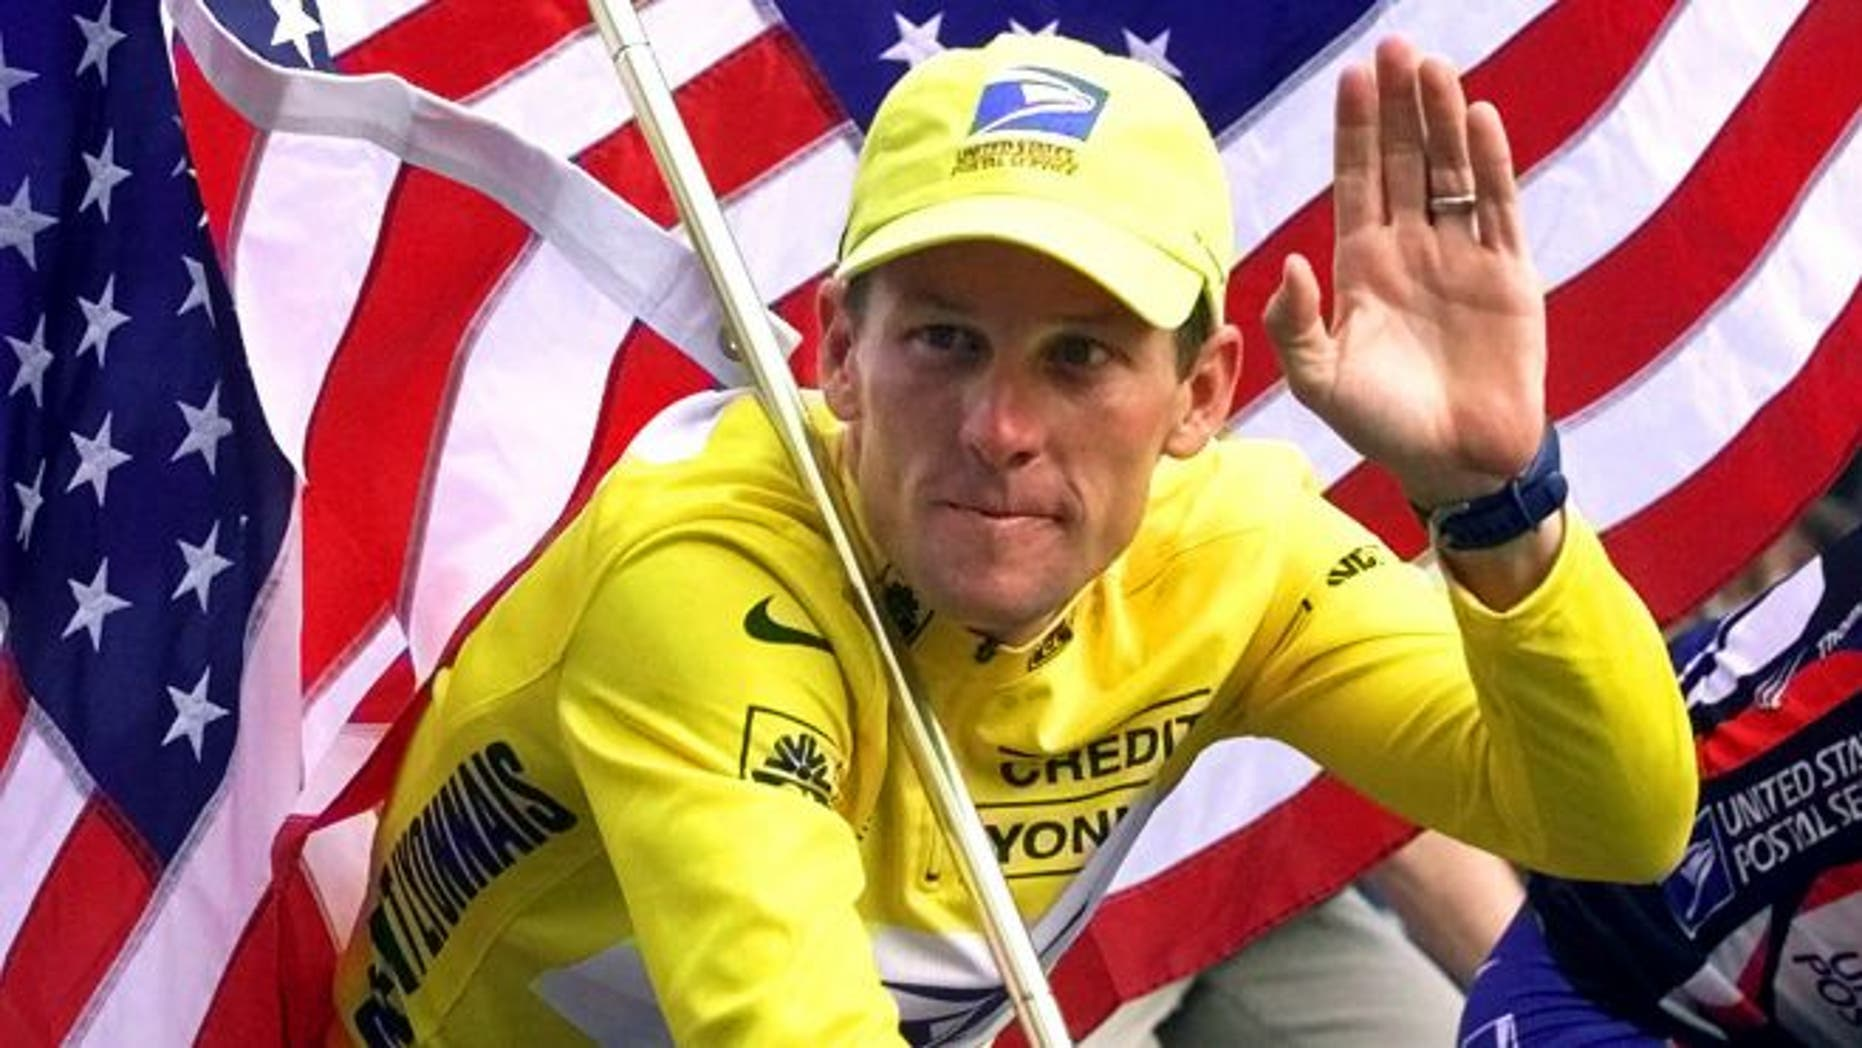 July 23, 2000: Lance Armstrong rides down the Champs Elysees after the final stage of the Tour de France cycling race in Paris.